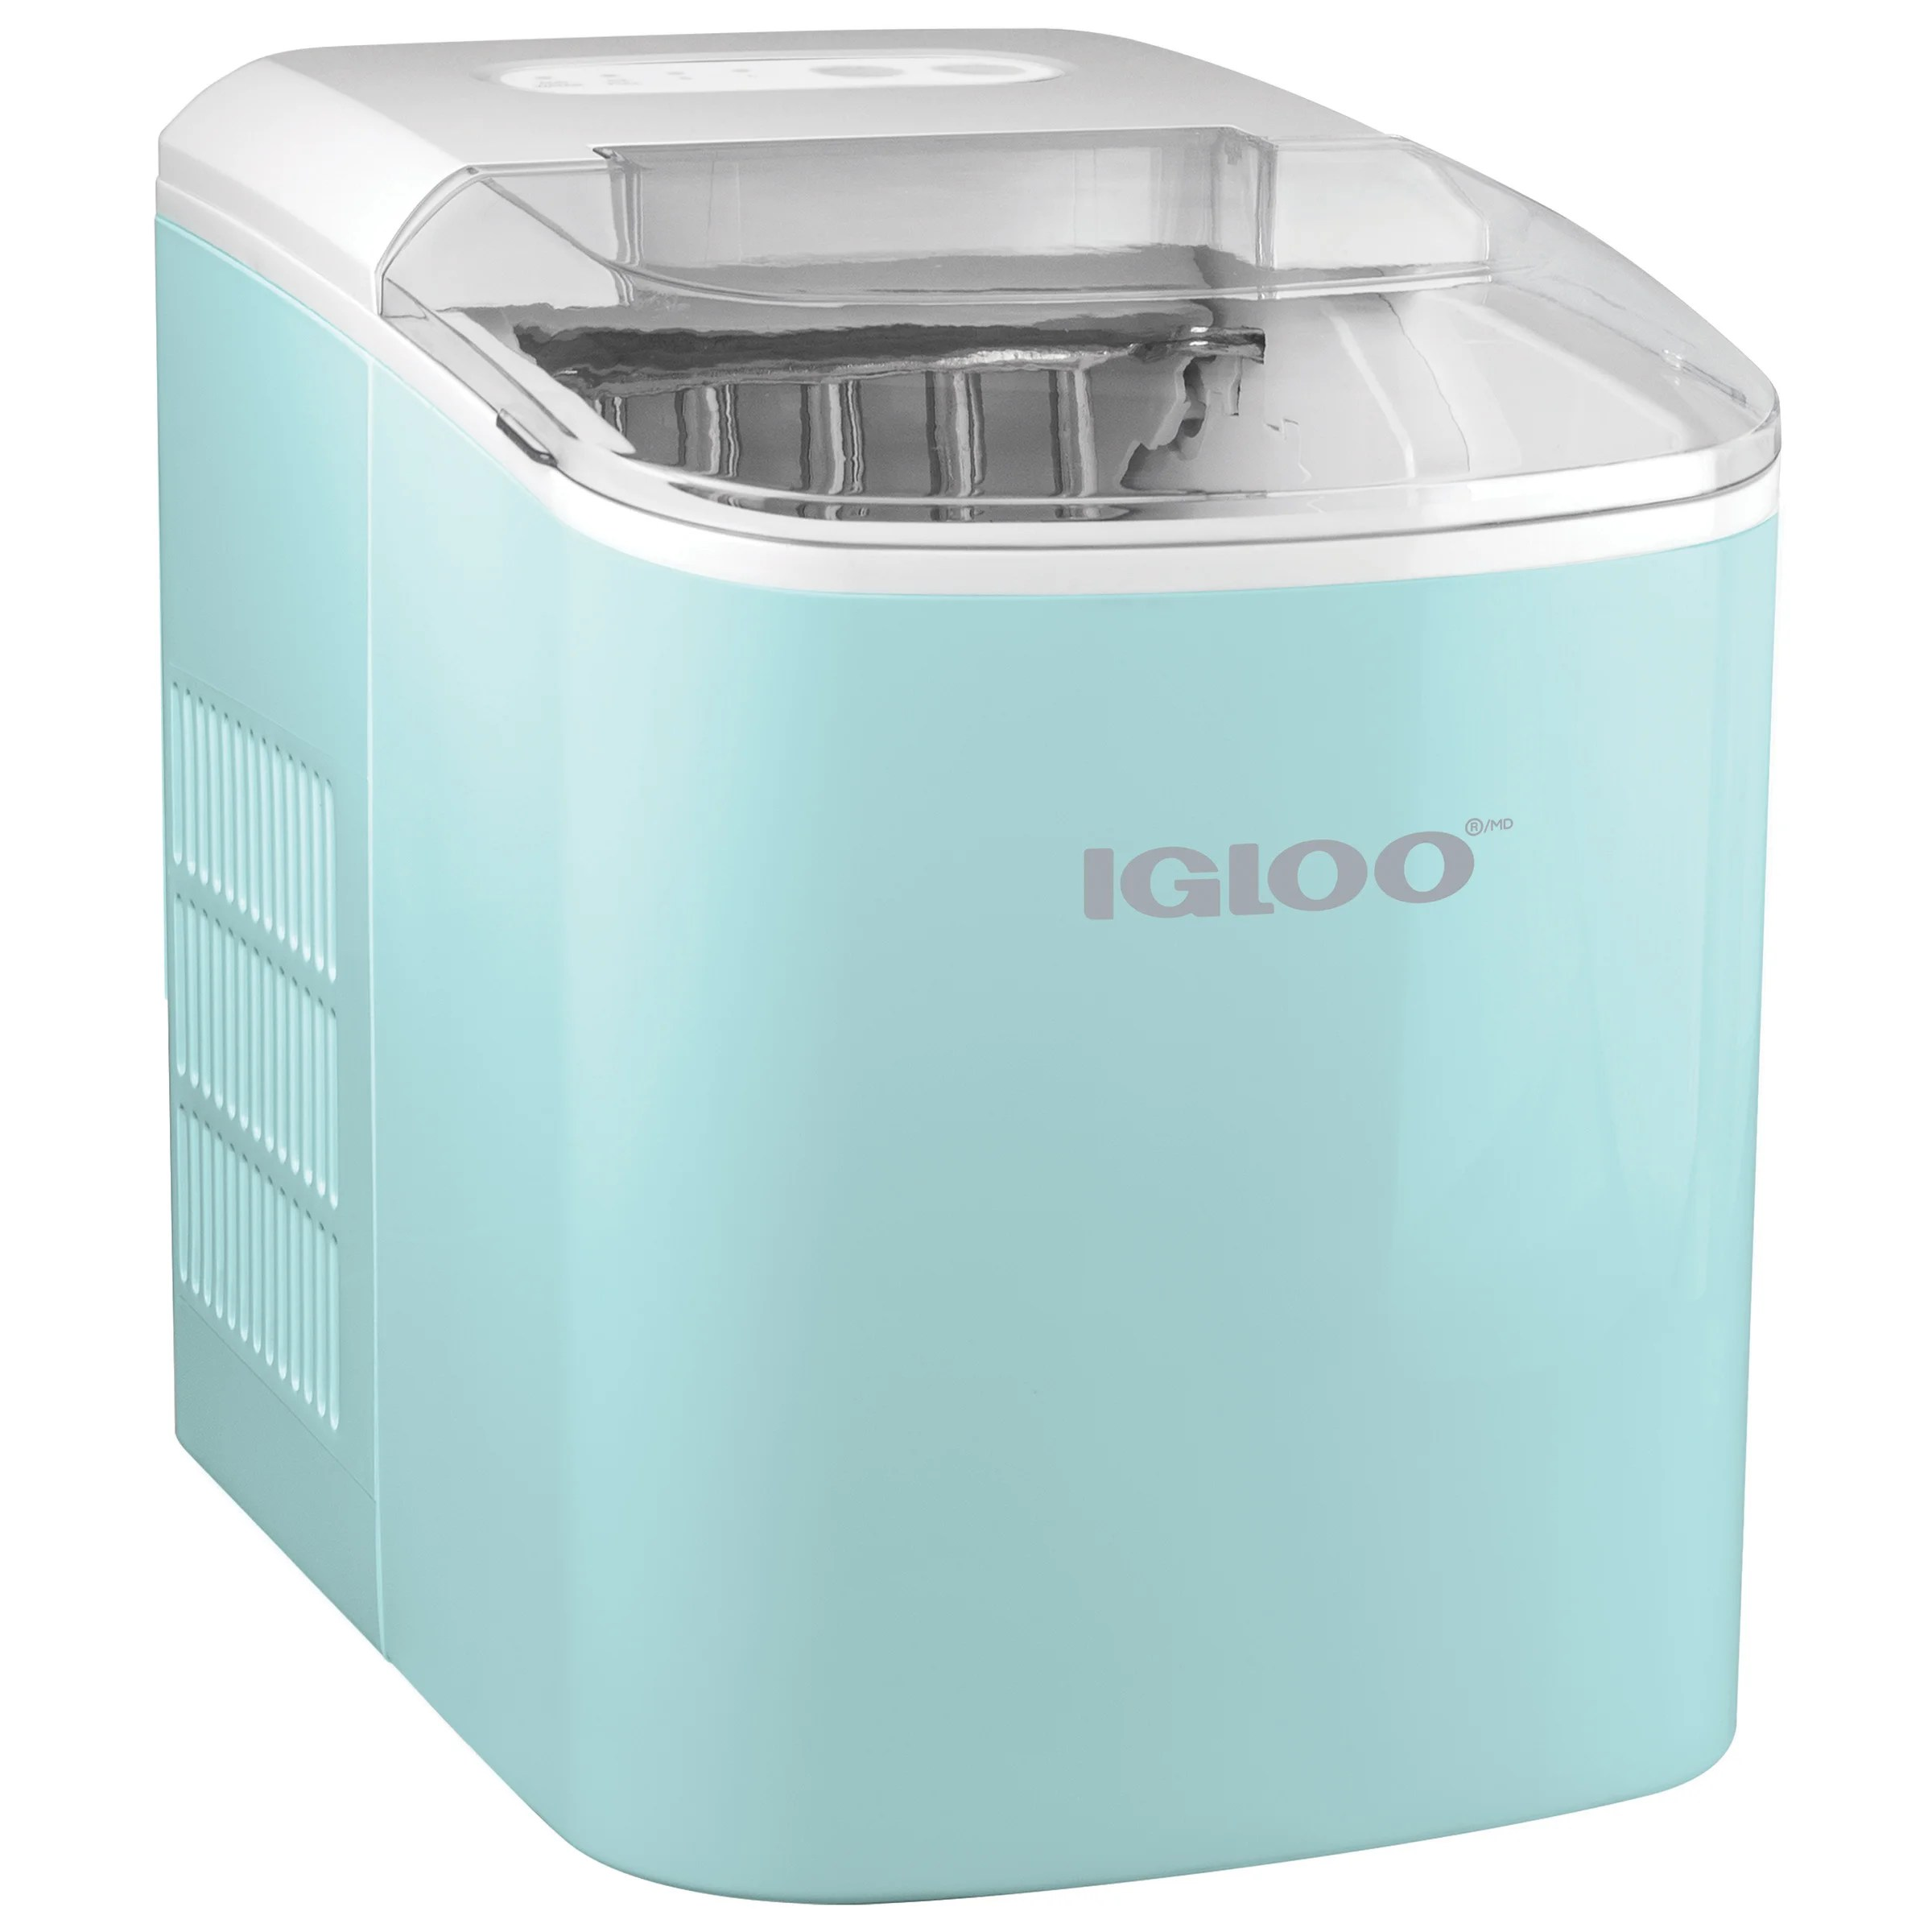 Igloo Retro Automatic Portable Electric Countertop Ice Maker Machine 26 Pounds In 24 Hours With Ice Scoop And Basket Reviews Wayfair